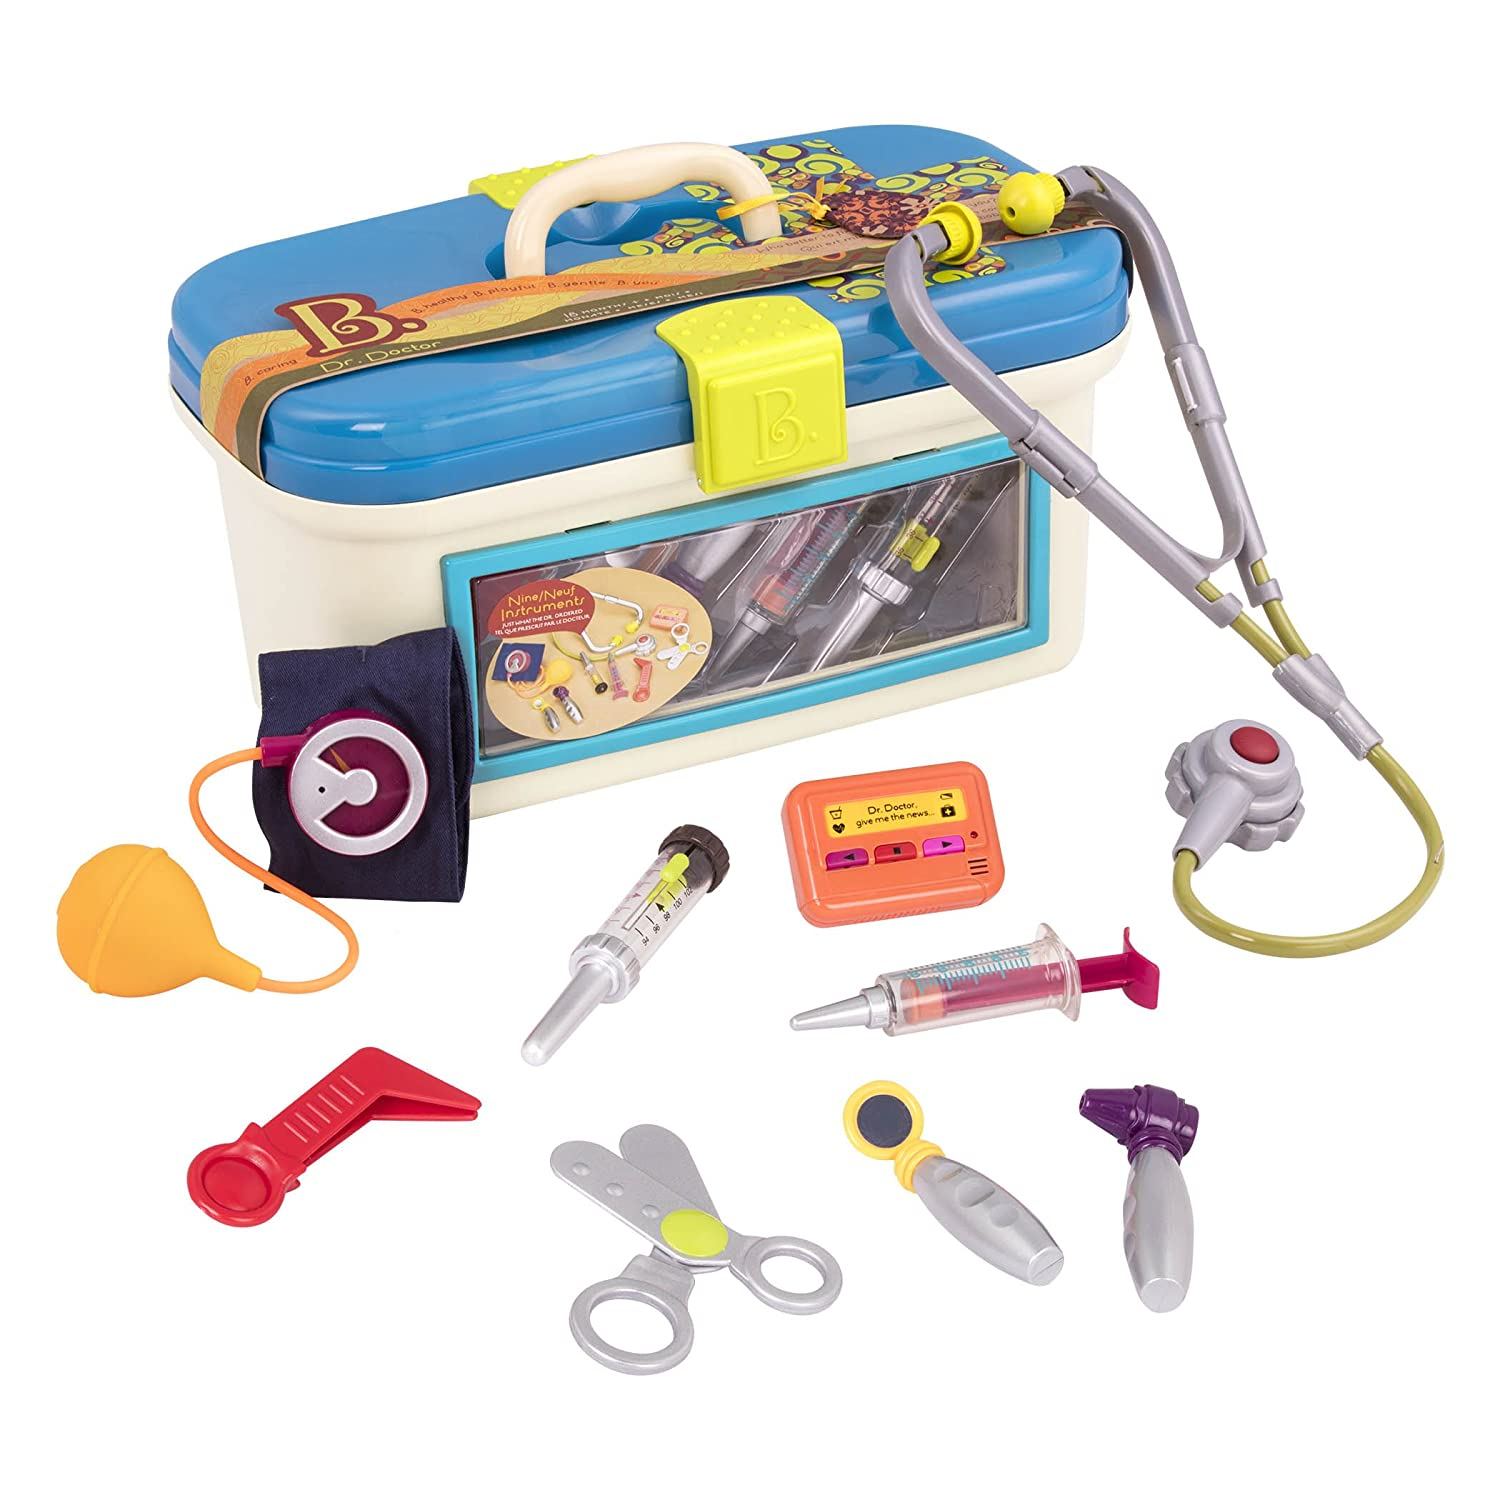 B. toys by Battat - B. Dr. Doctor Toy – Deluxe Medical Kit for Toddlers - Pretend Play Set for Kids (10 pieces) BX1110Z